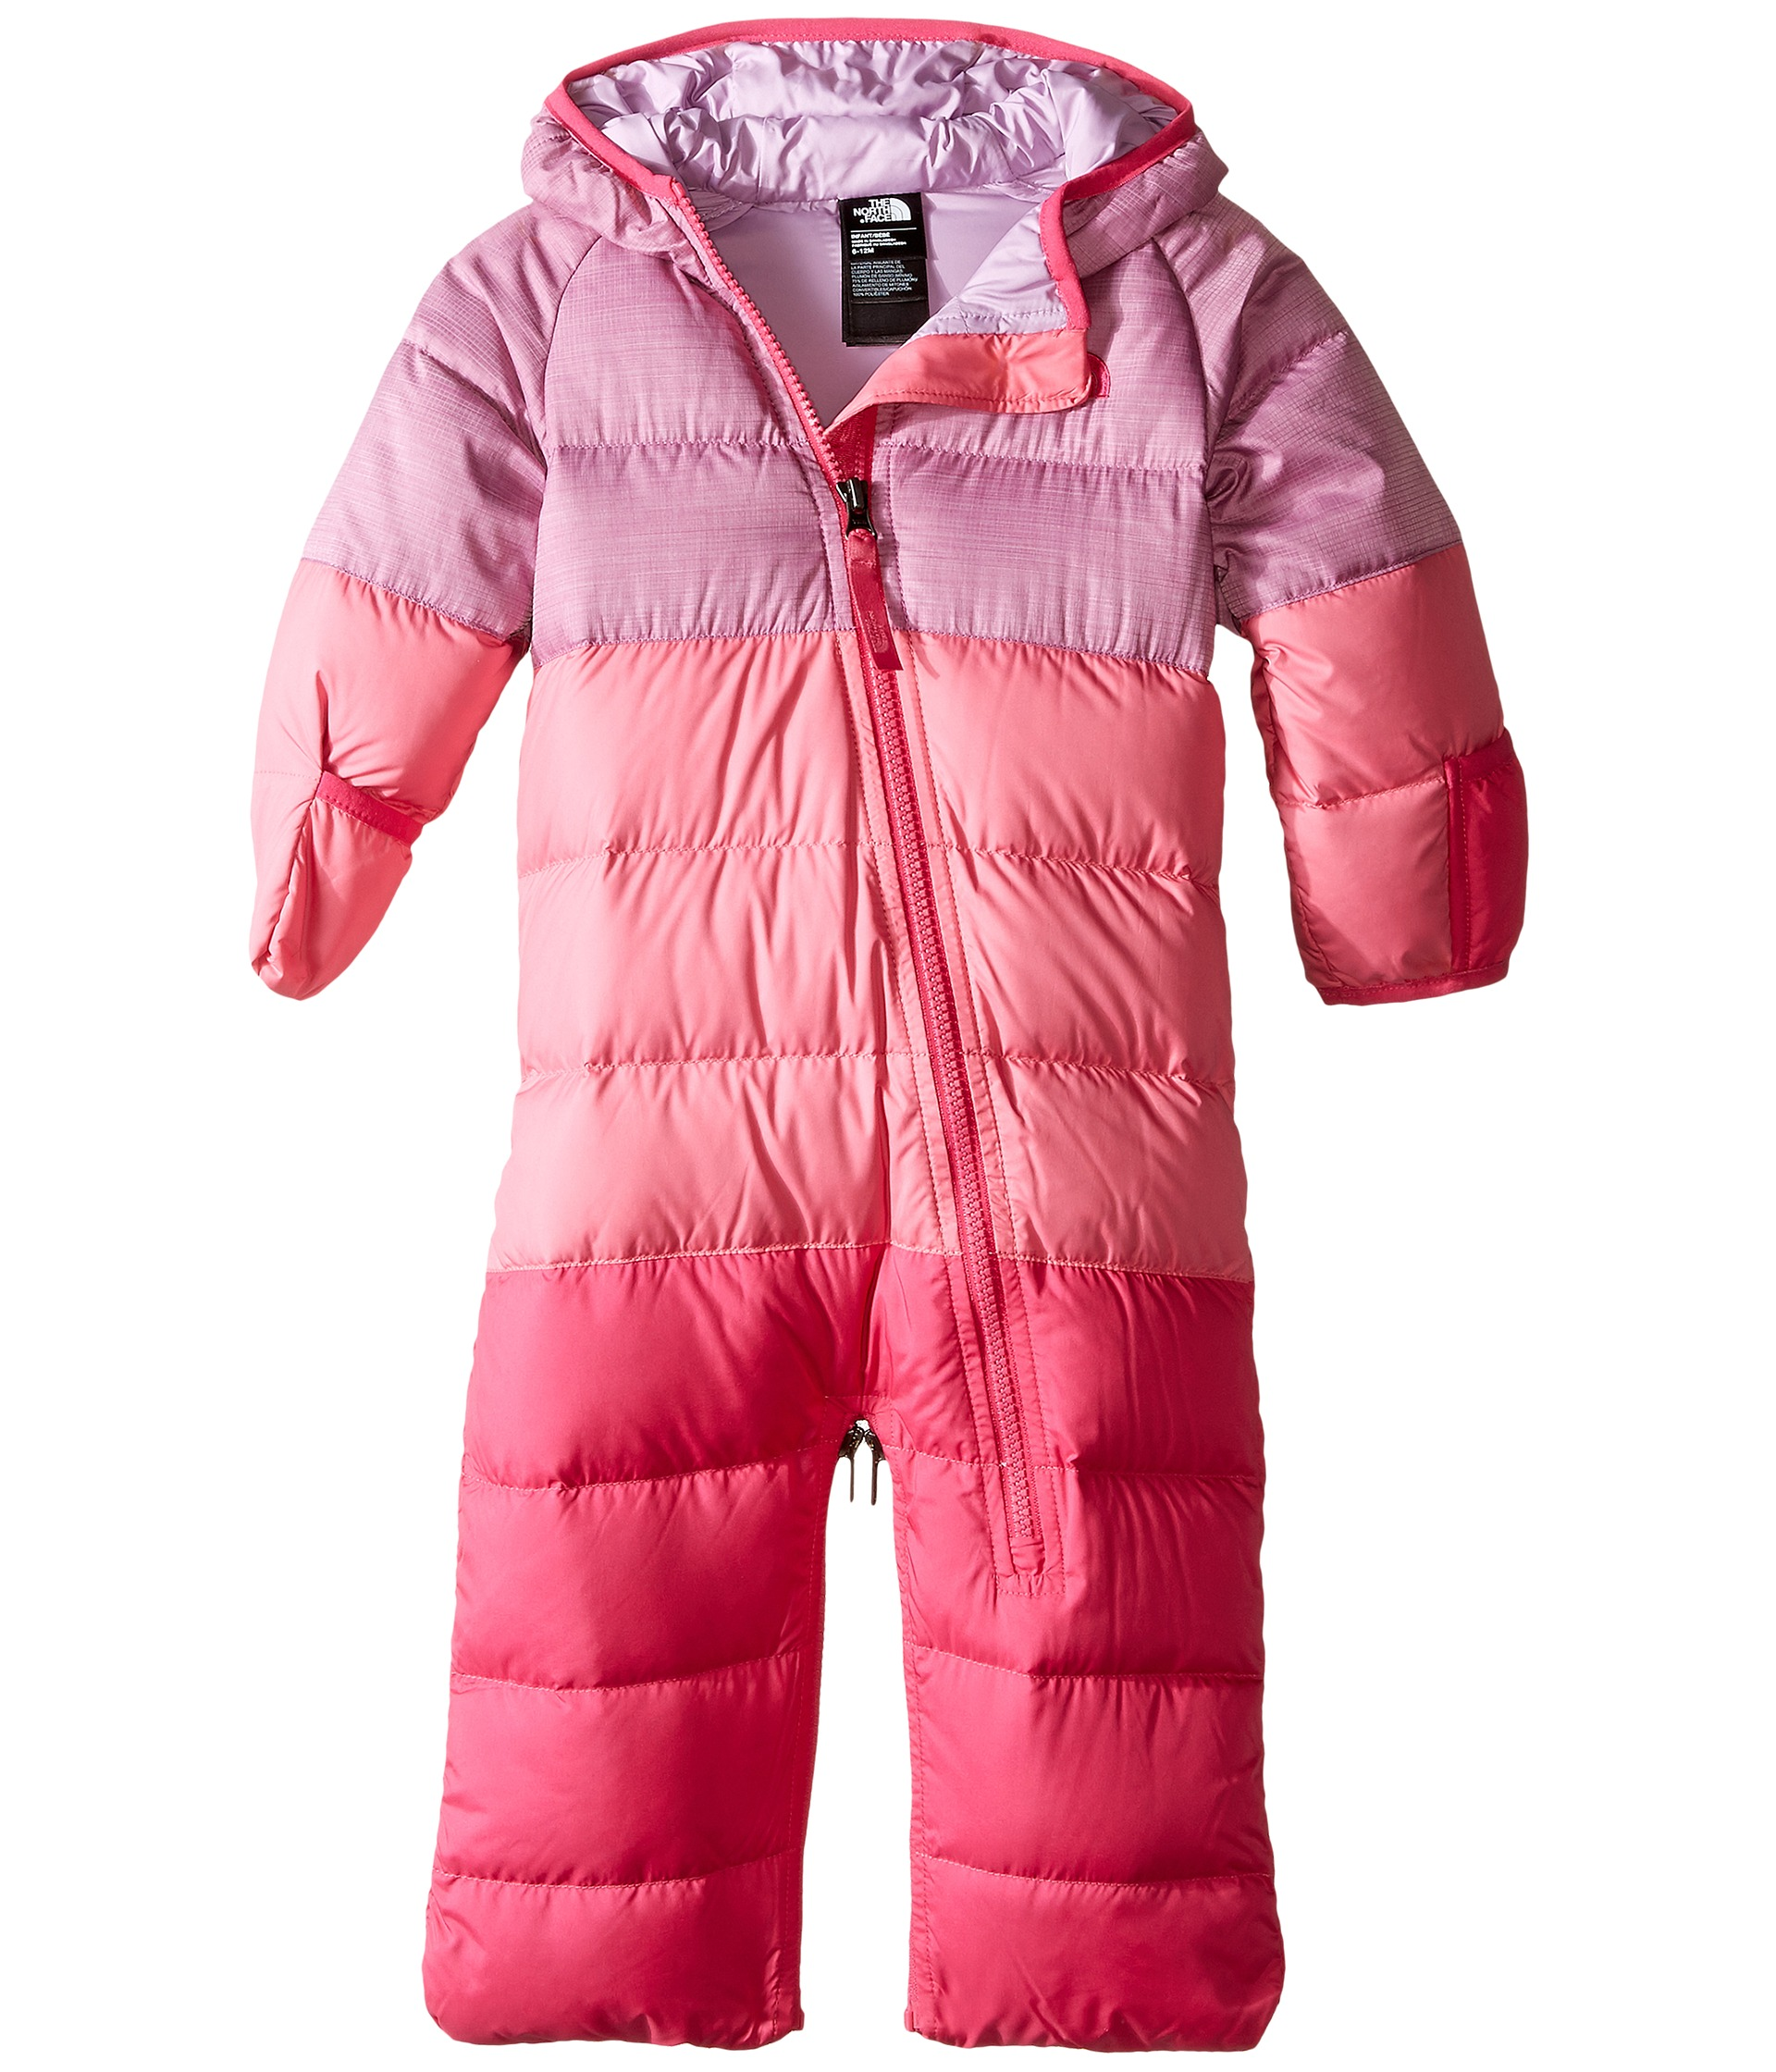 b2bbb6eb5f6c The North Face Kids Lil Snuggler Down Bunting (Infant) Wisteria ...